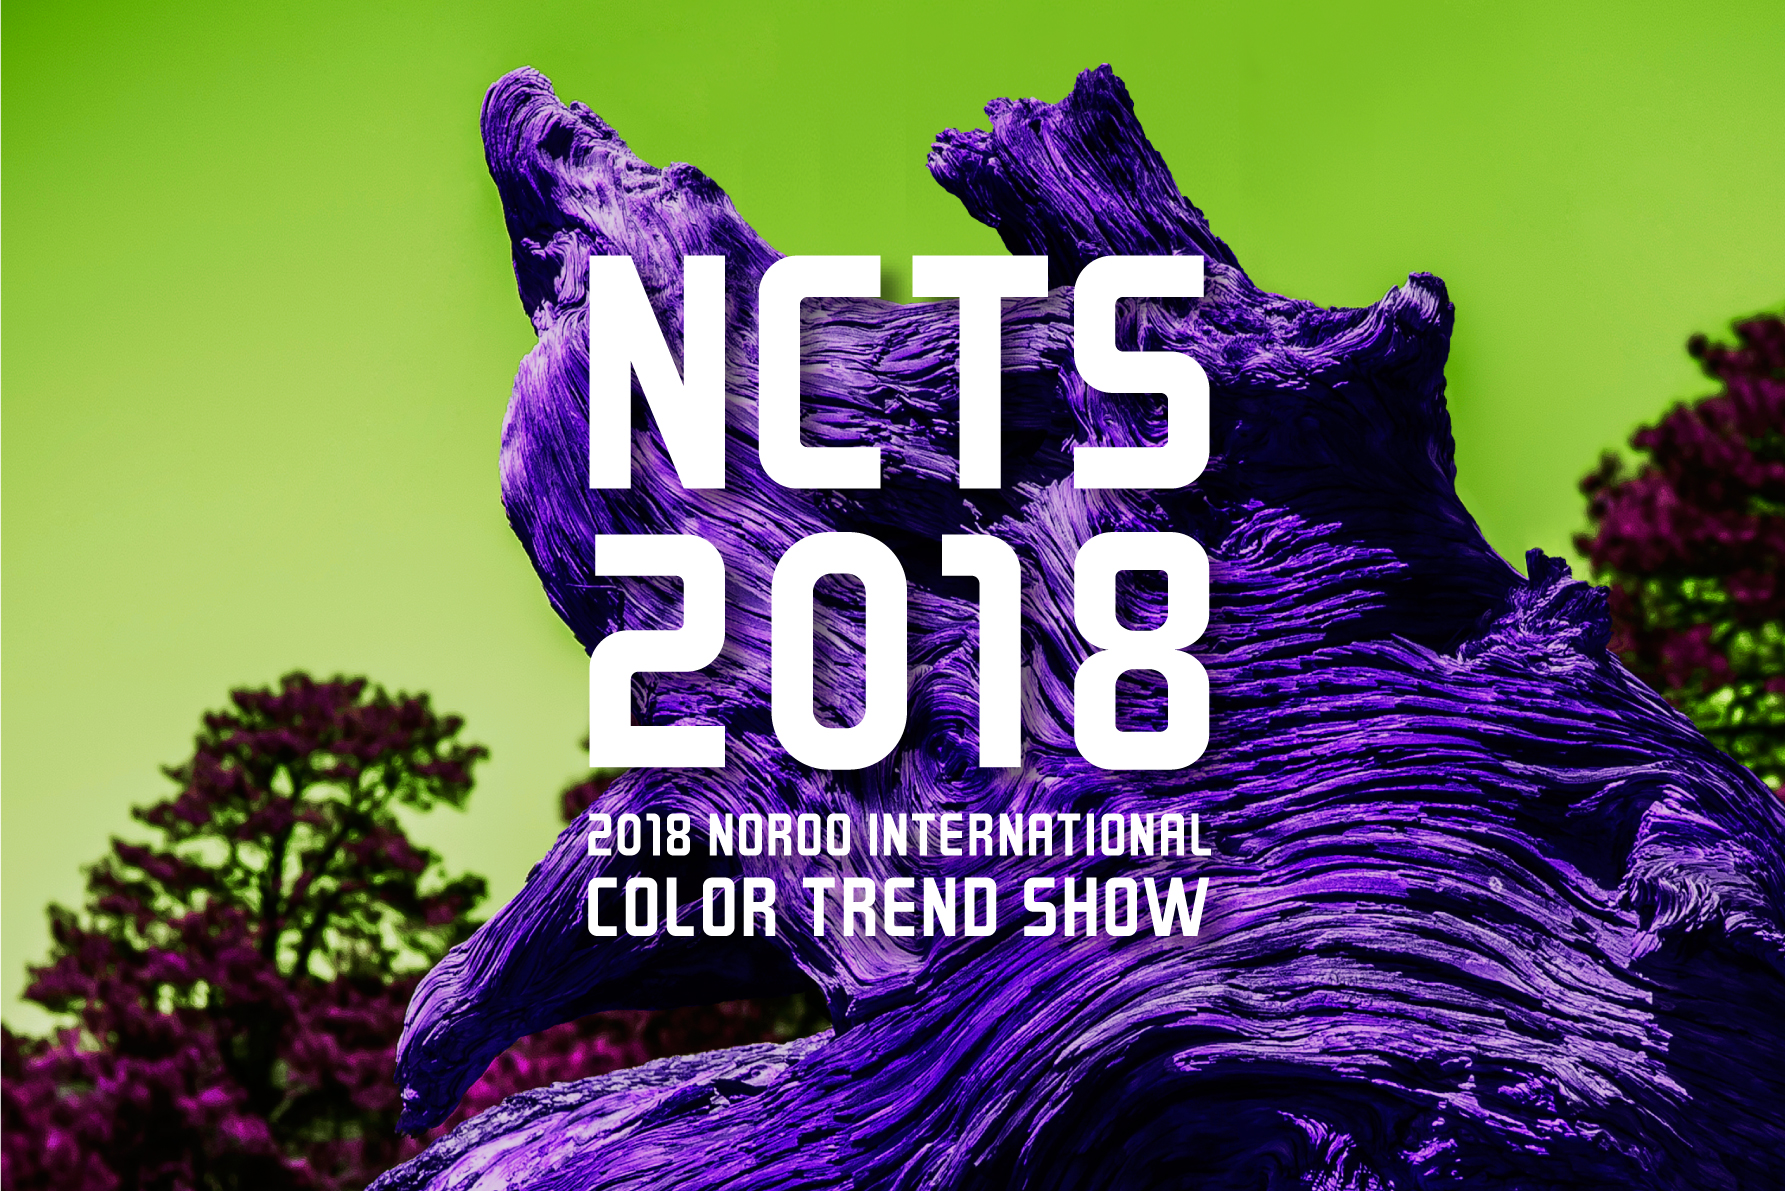 NCTS-2018-1.jpg